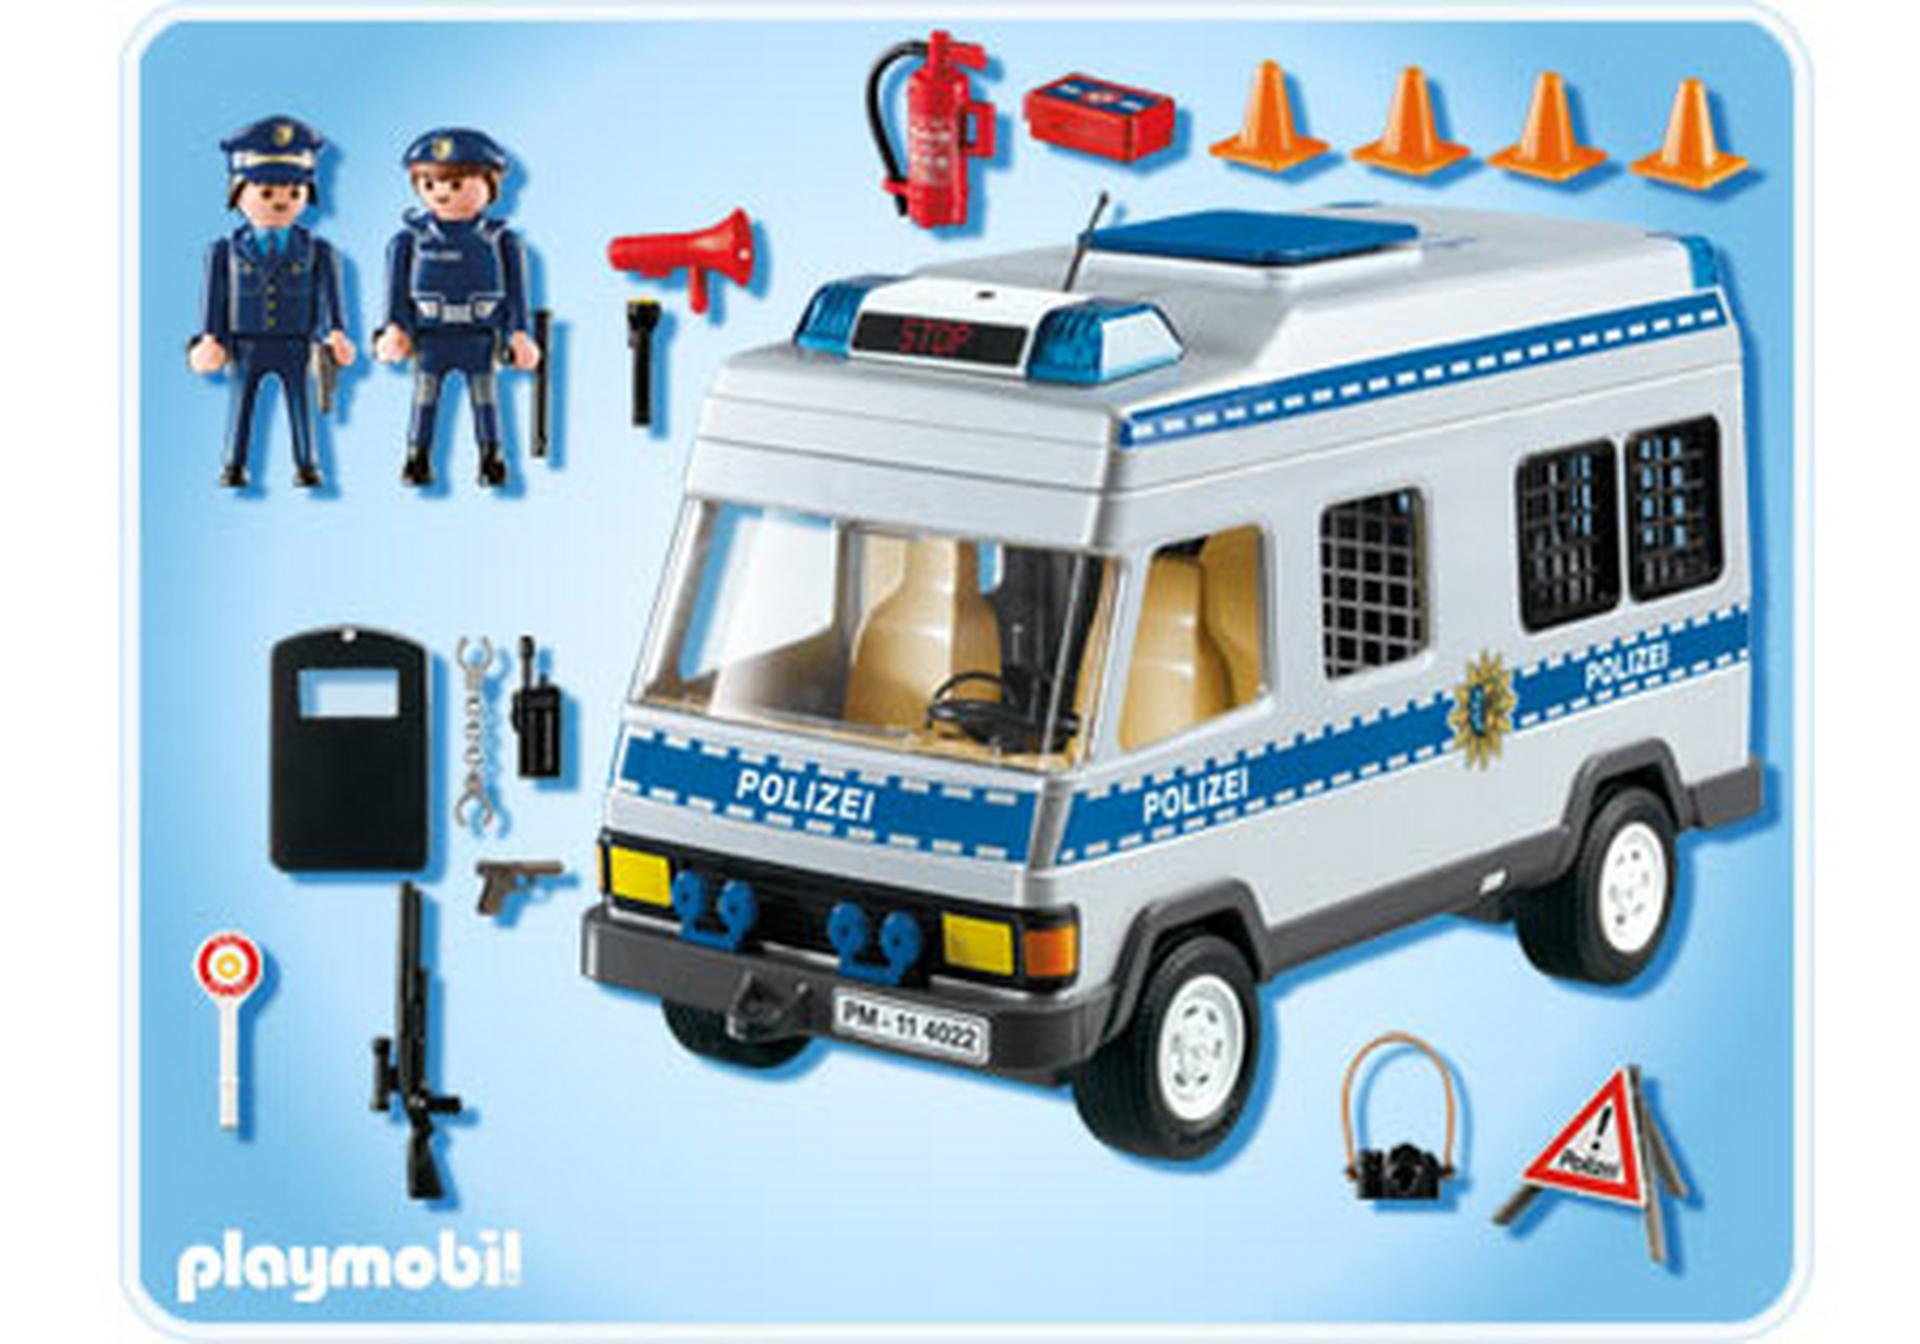 mannschaftswagen 4022 a playmobil deutschland. Black Bedroom Furniture Sets. Home Design Ideas